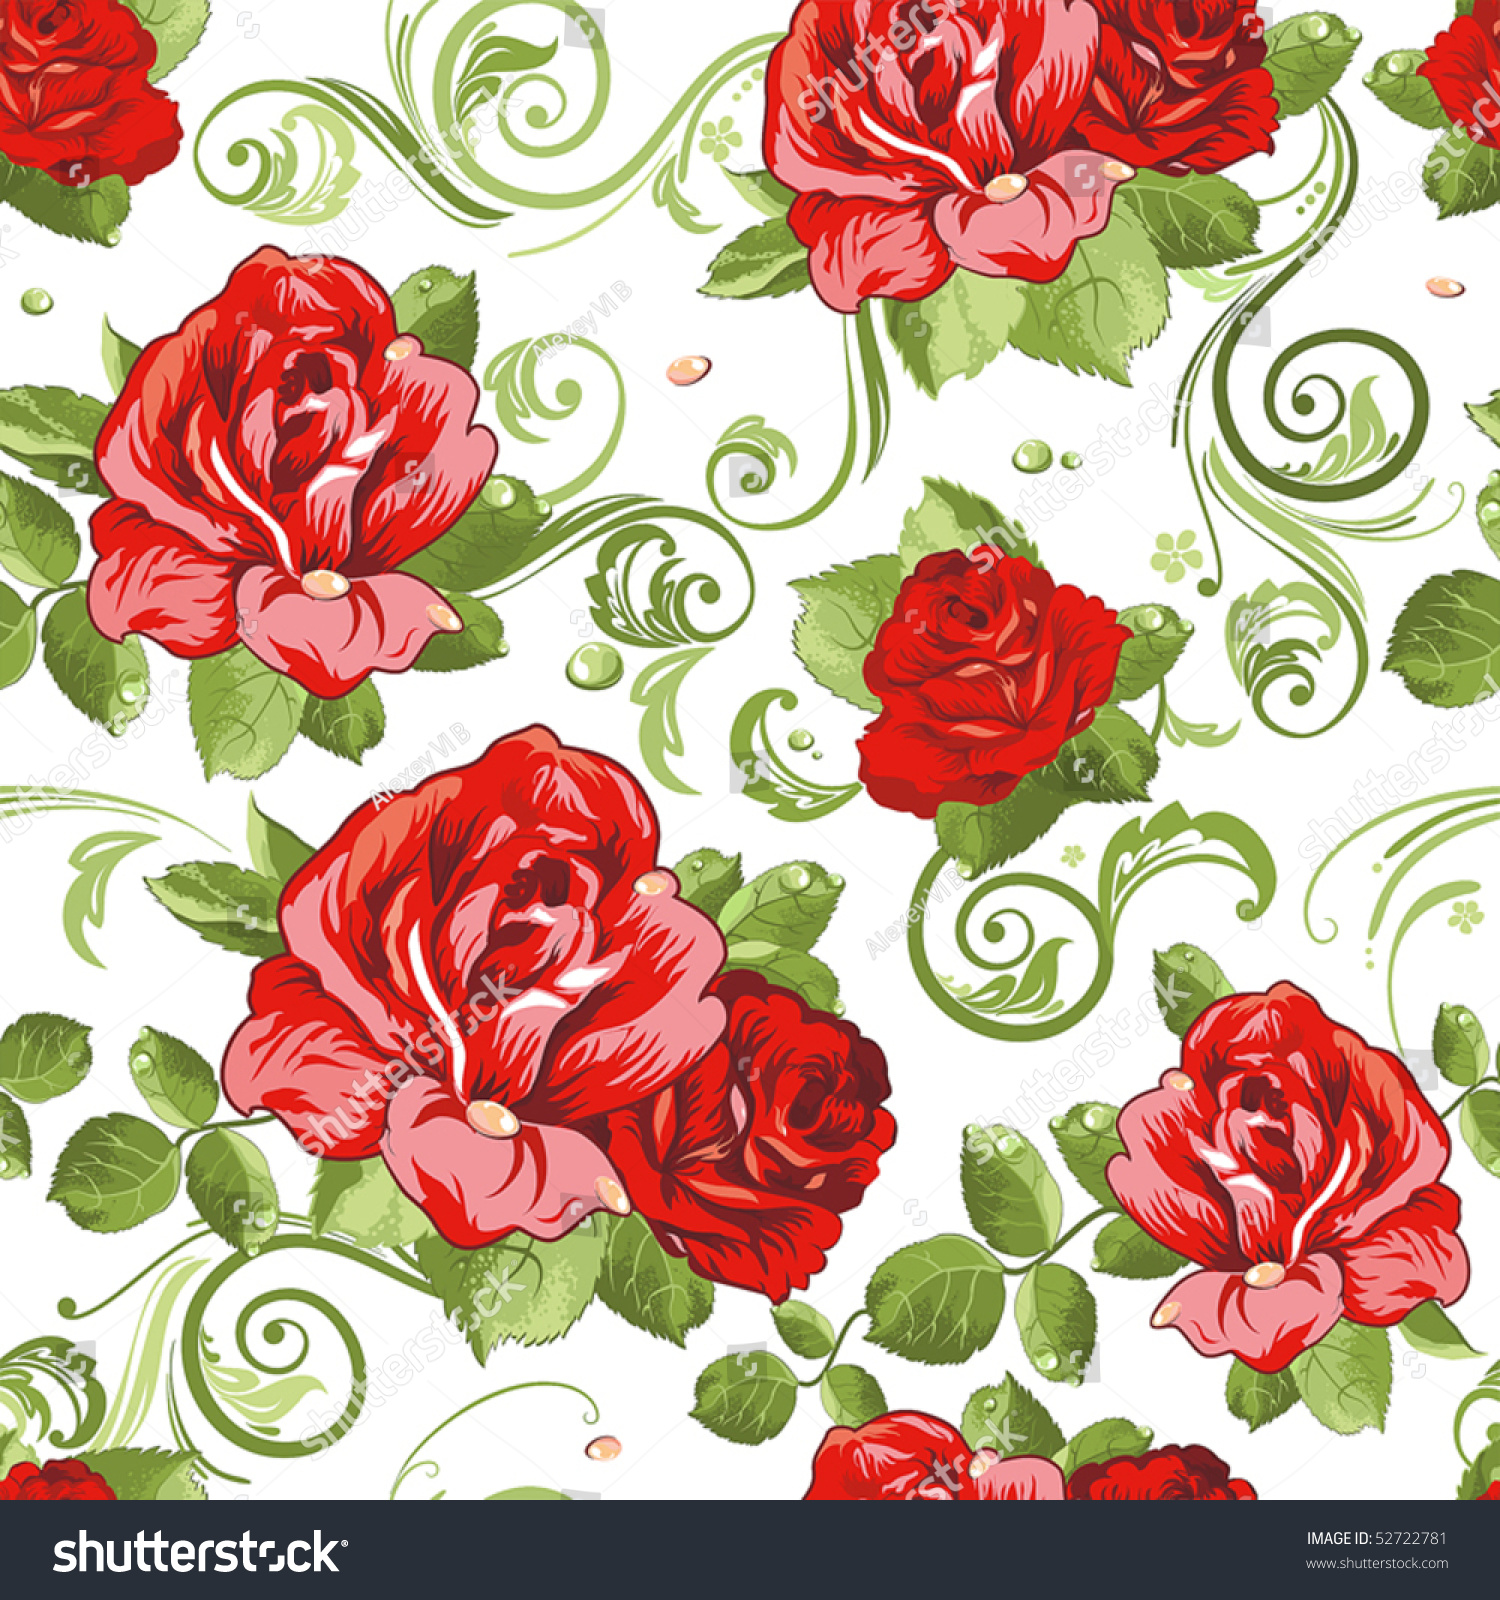 This Page Contains All About Red Rose Wallpaper Pattern